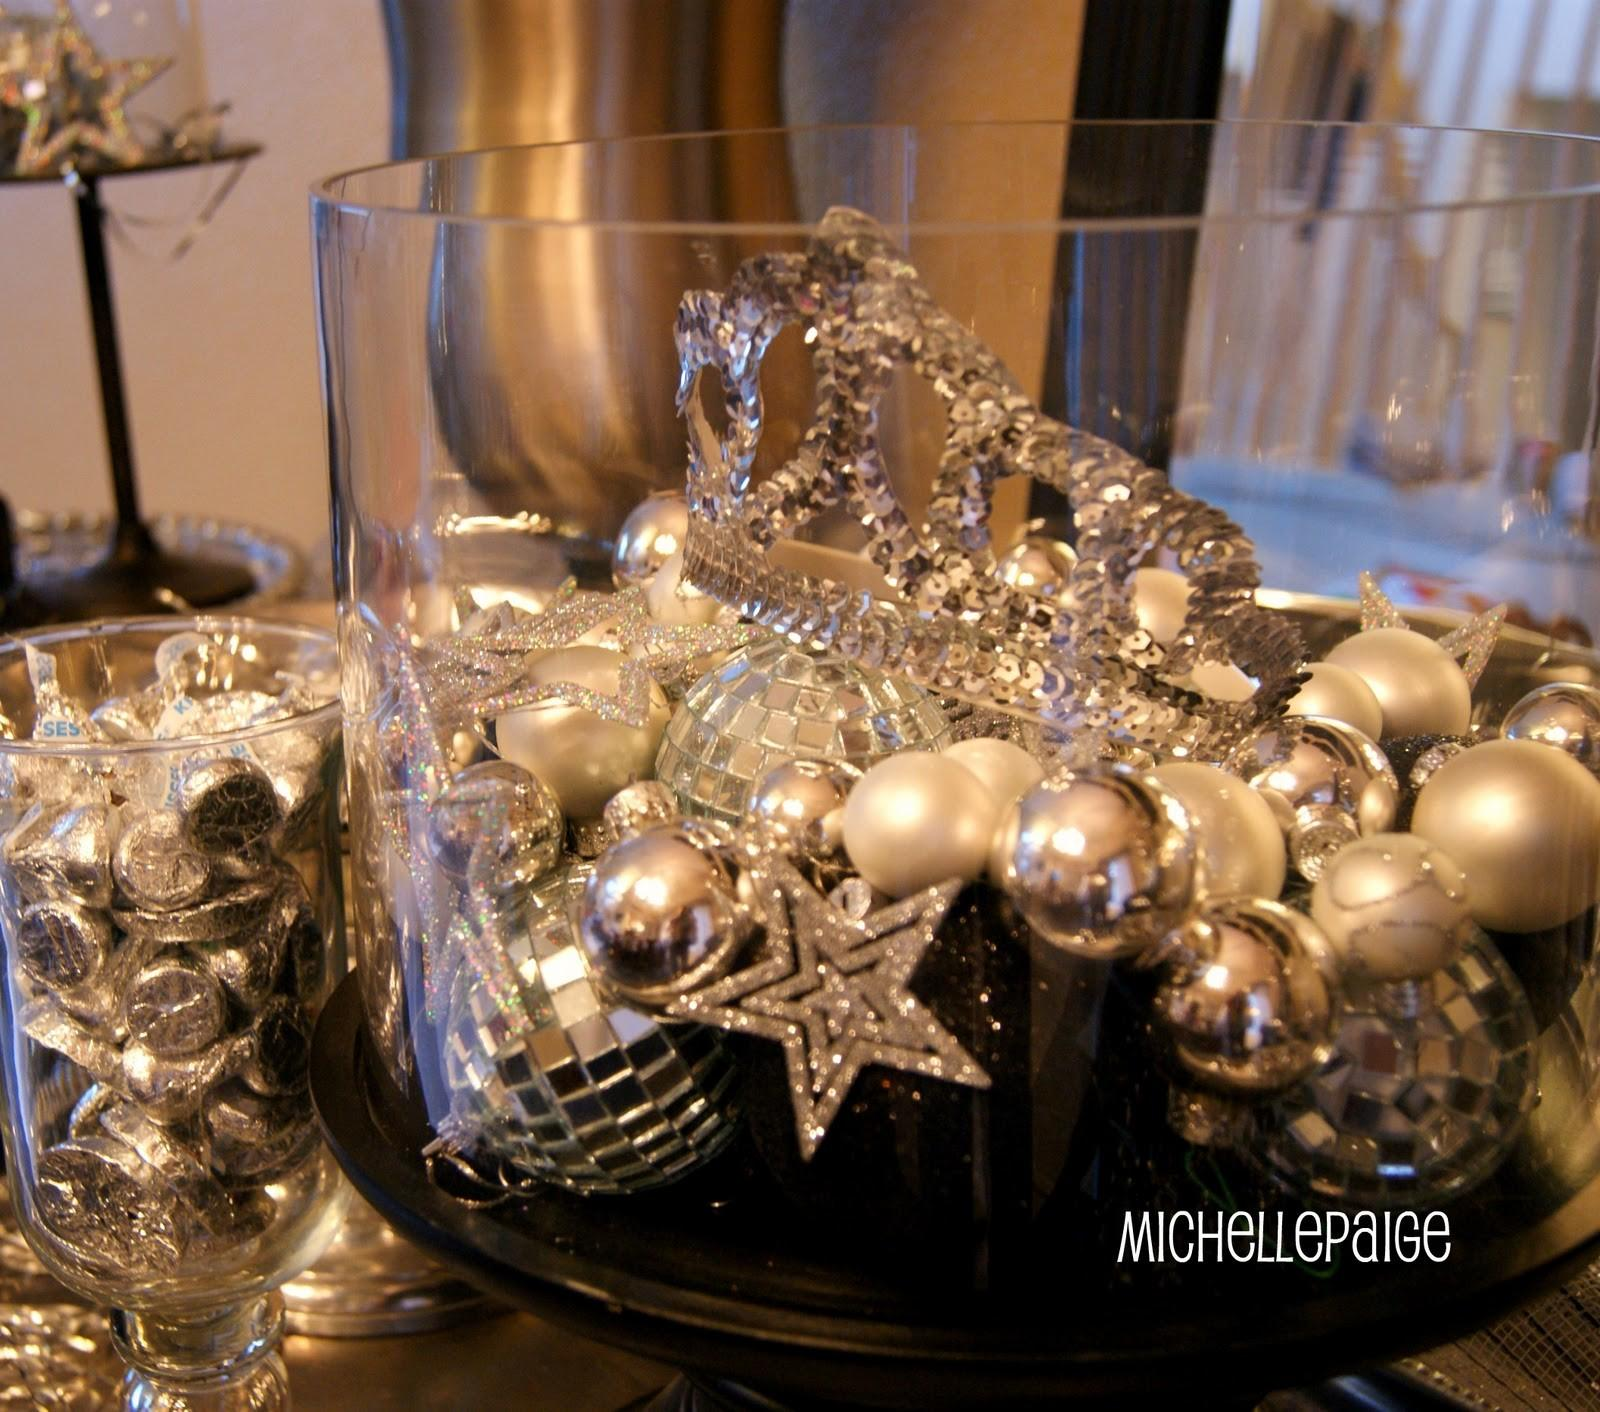 Michelle Paige Blogs New Year Eve Decor